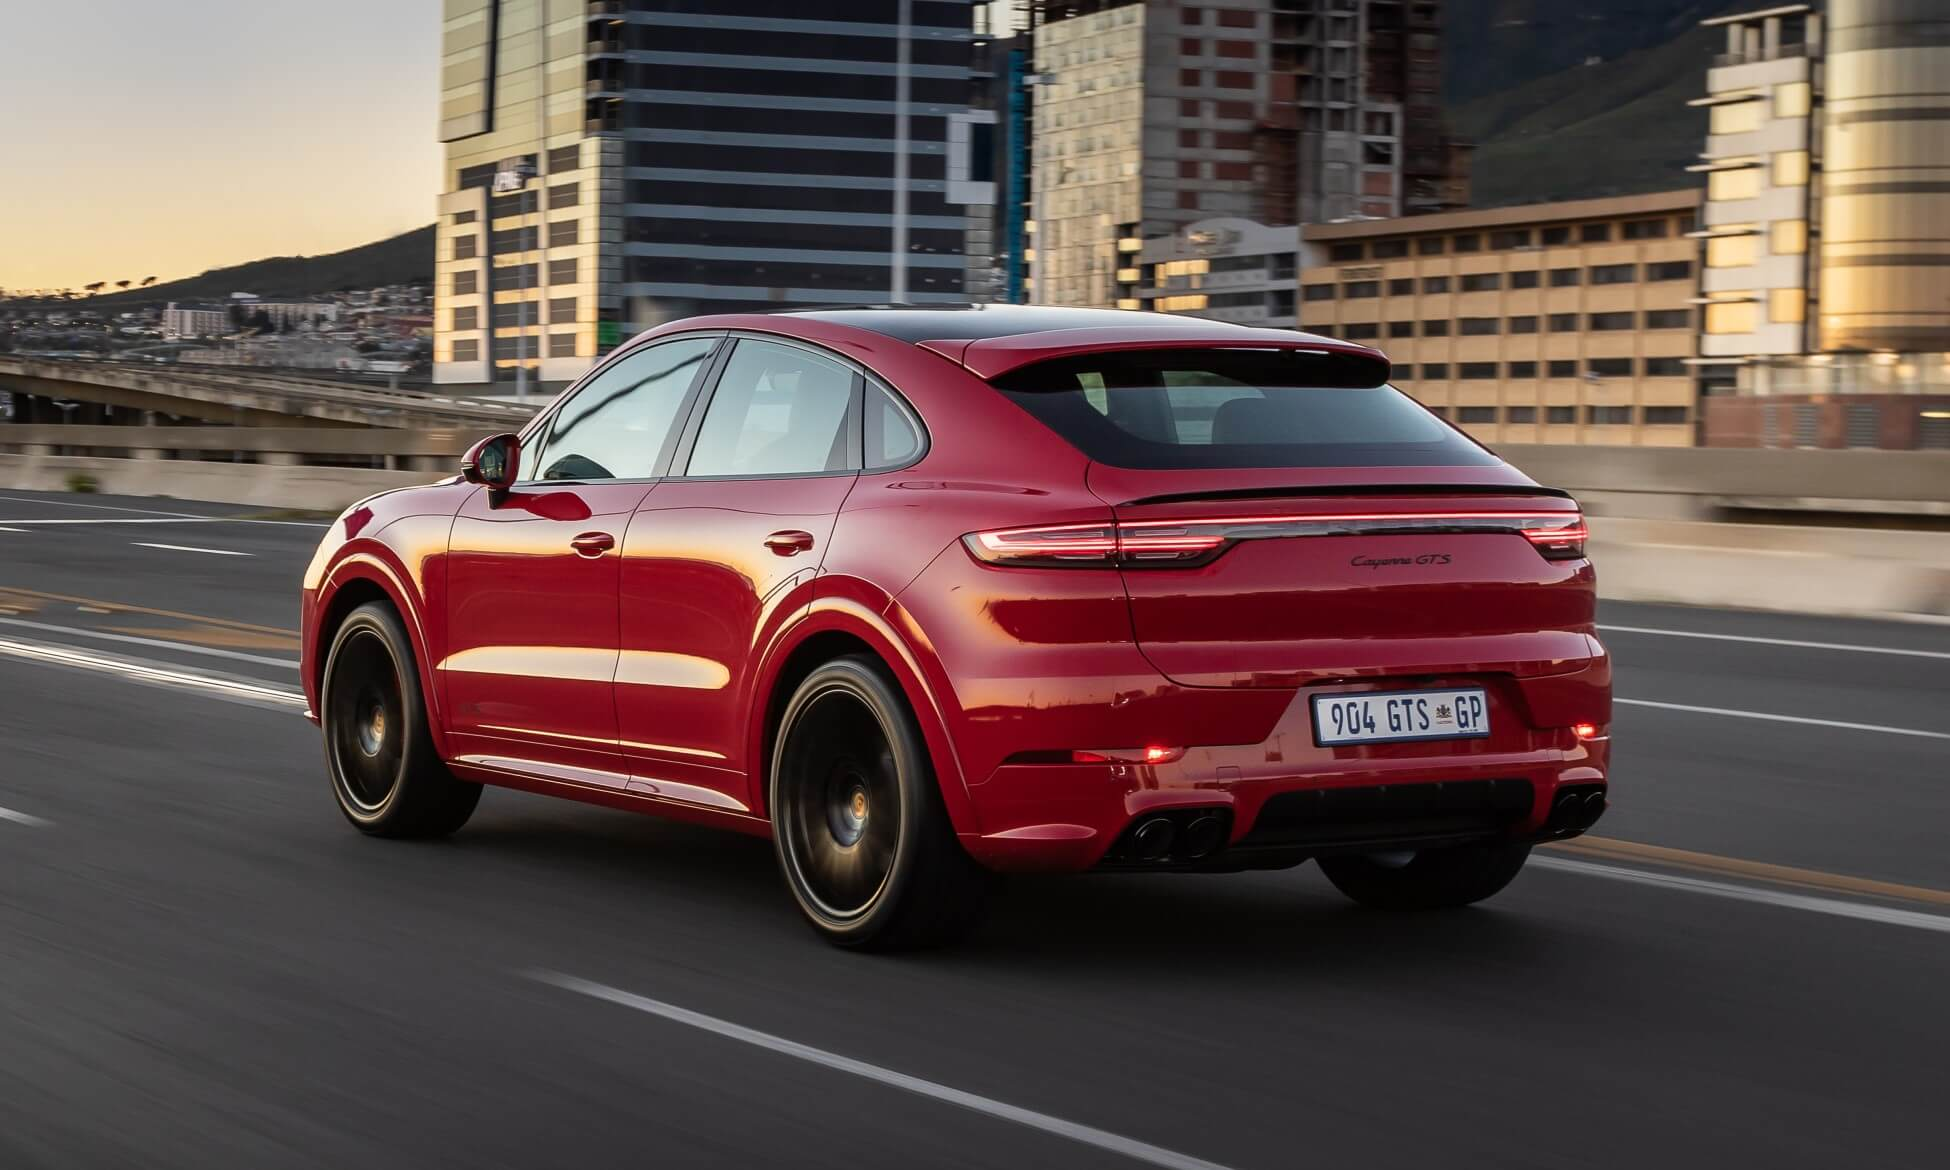 Porsche Cayenne GTS Coupe rear